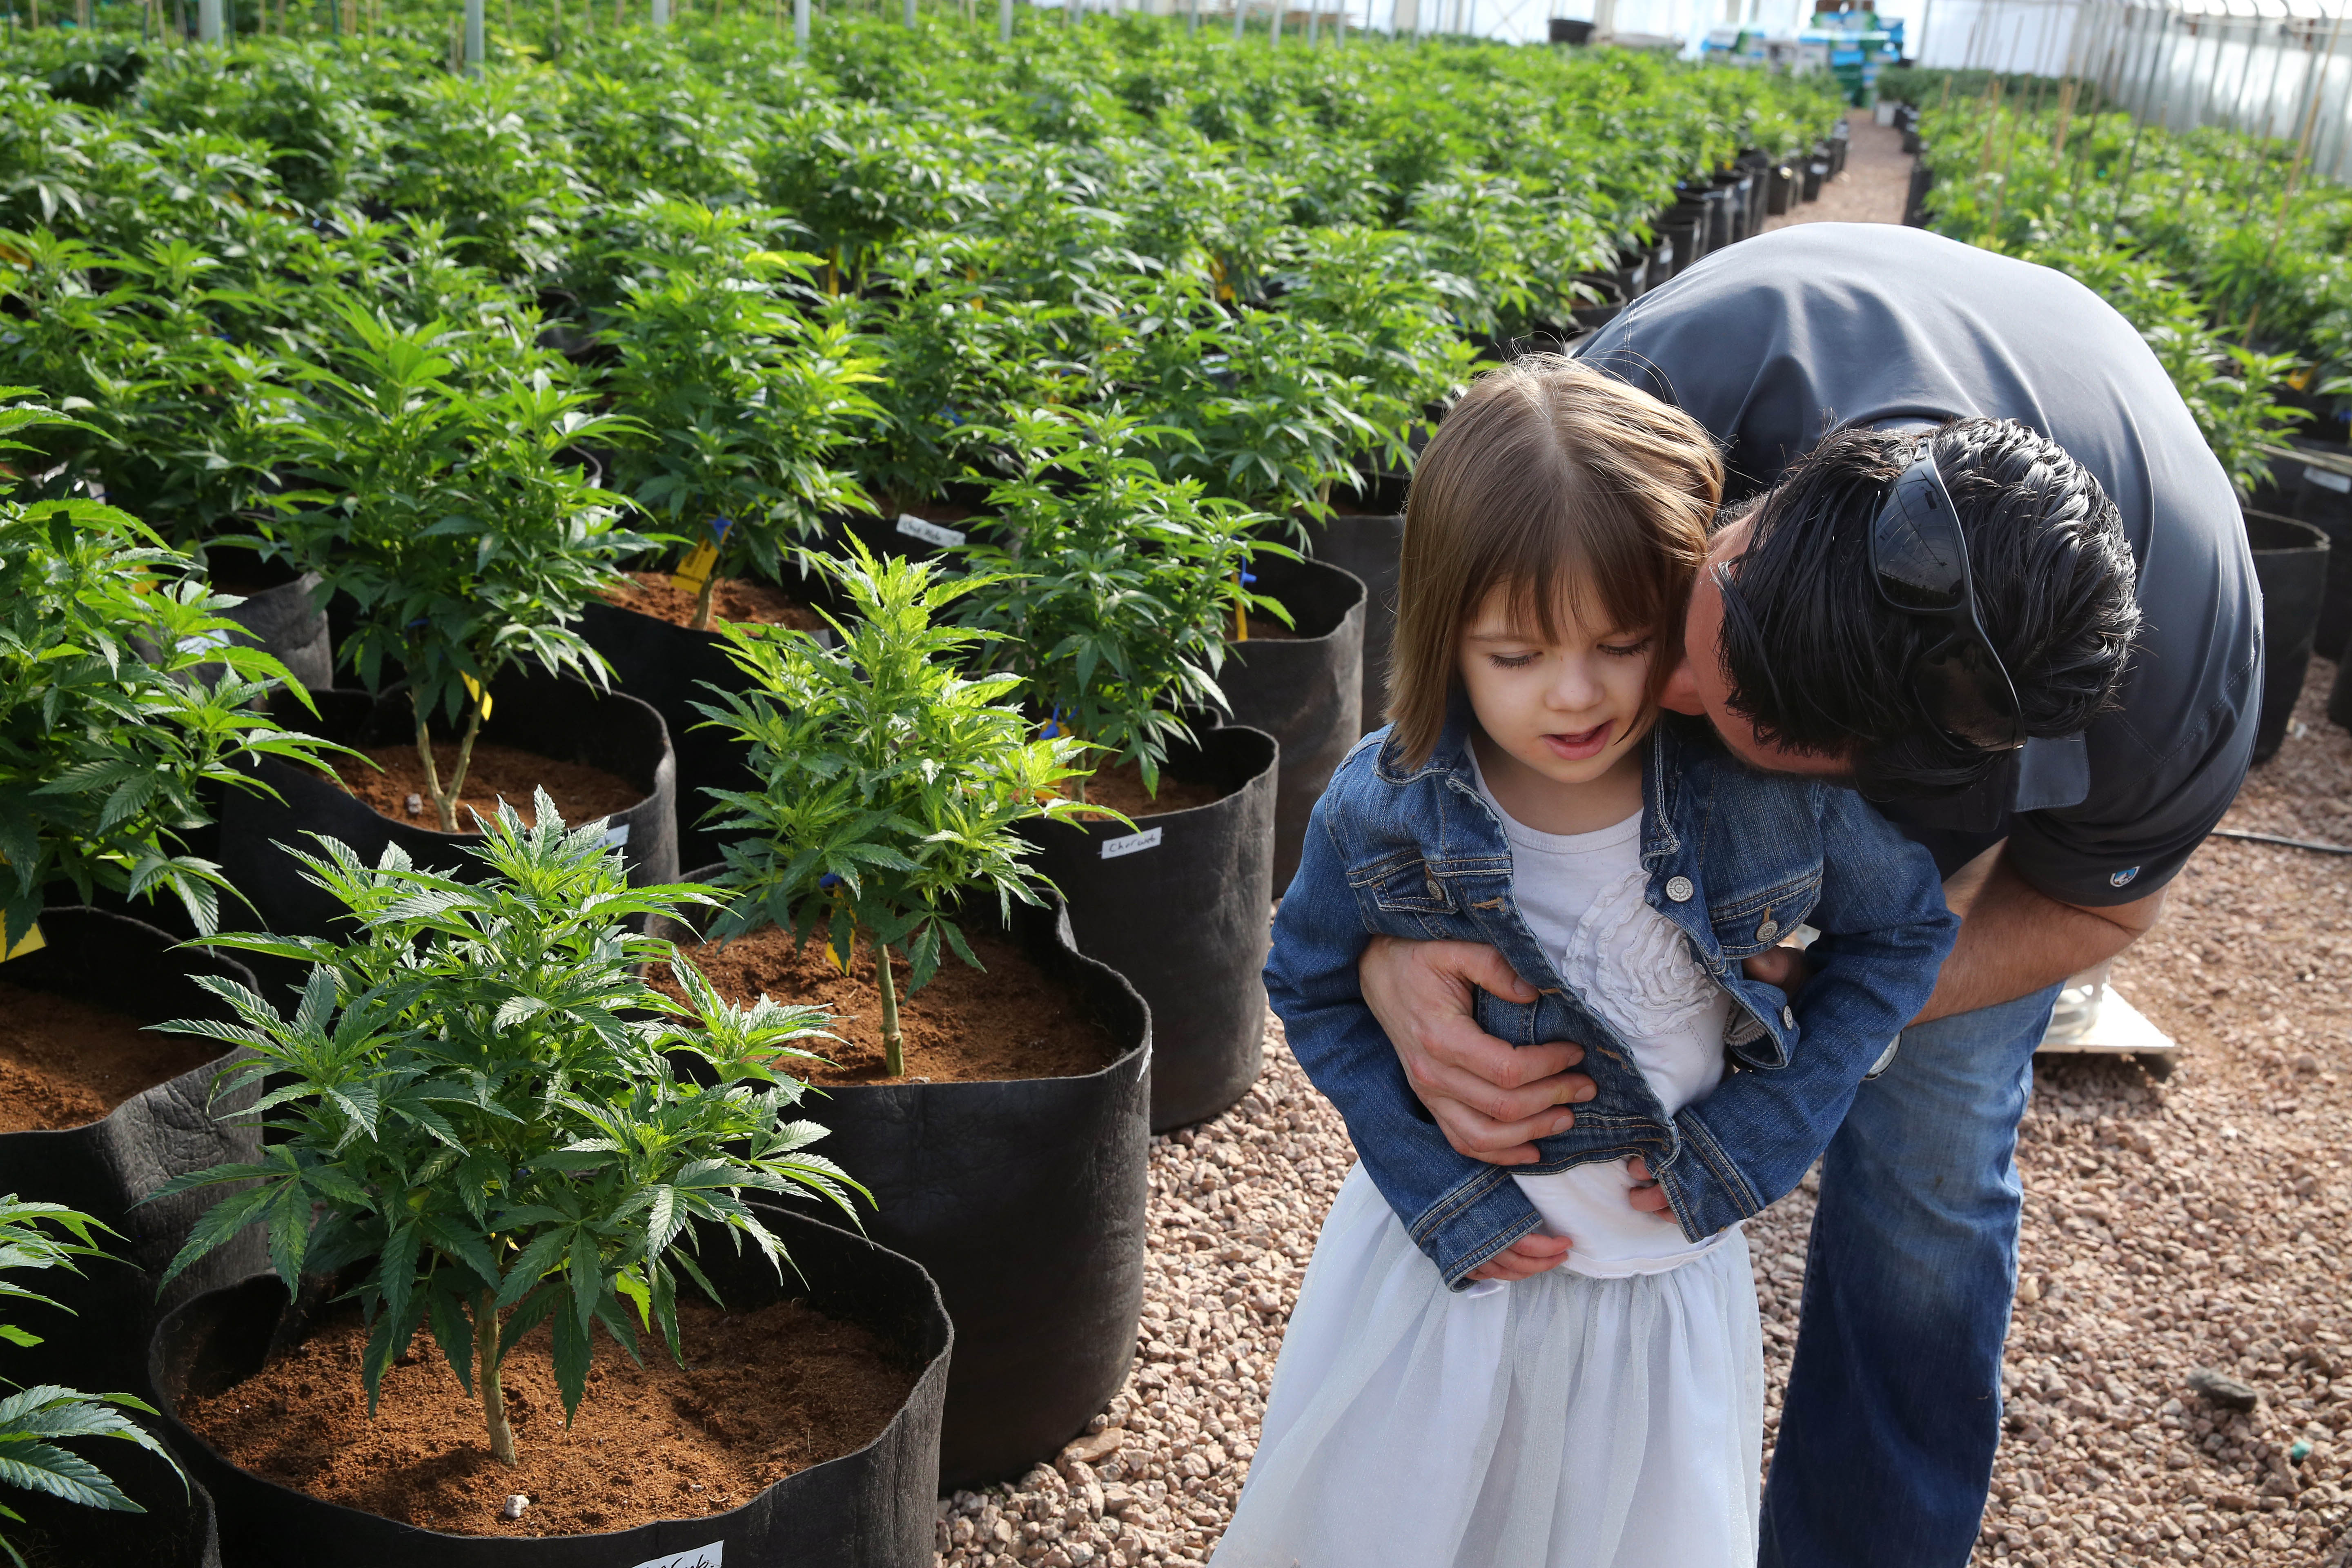 In this Feb. 7, 2014 photo, Matt Figi hugs and tickles his once severely-ill 7-year-old daughter Charlotte, as they wander around inside a greenhouse for a special strain of medical marijuana known as Charlotte's Web, which was named after the girl early in her treatment, in a remote spot in the mountains west of Colorado Springs, Colo.